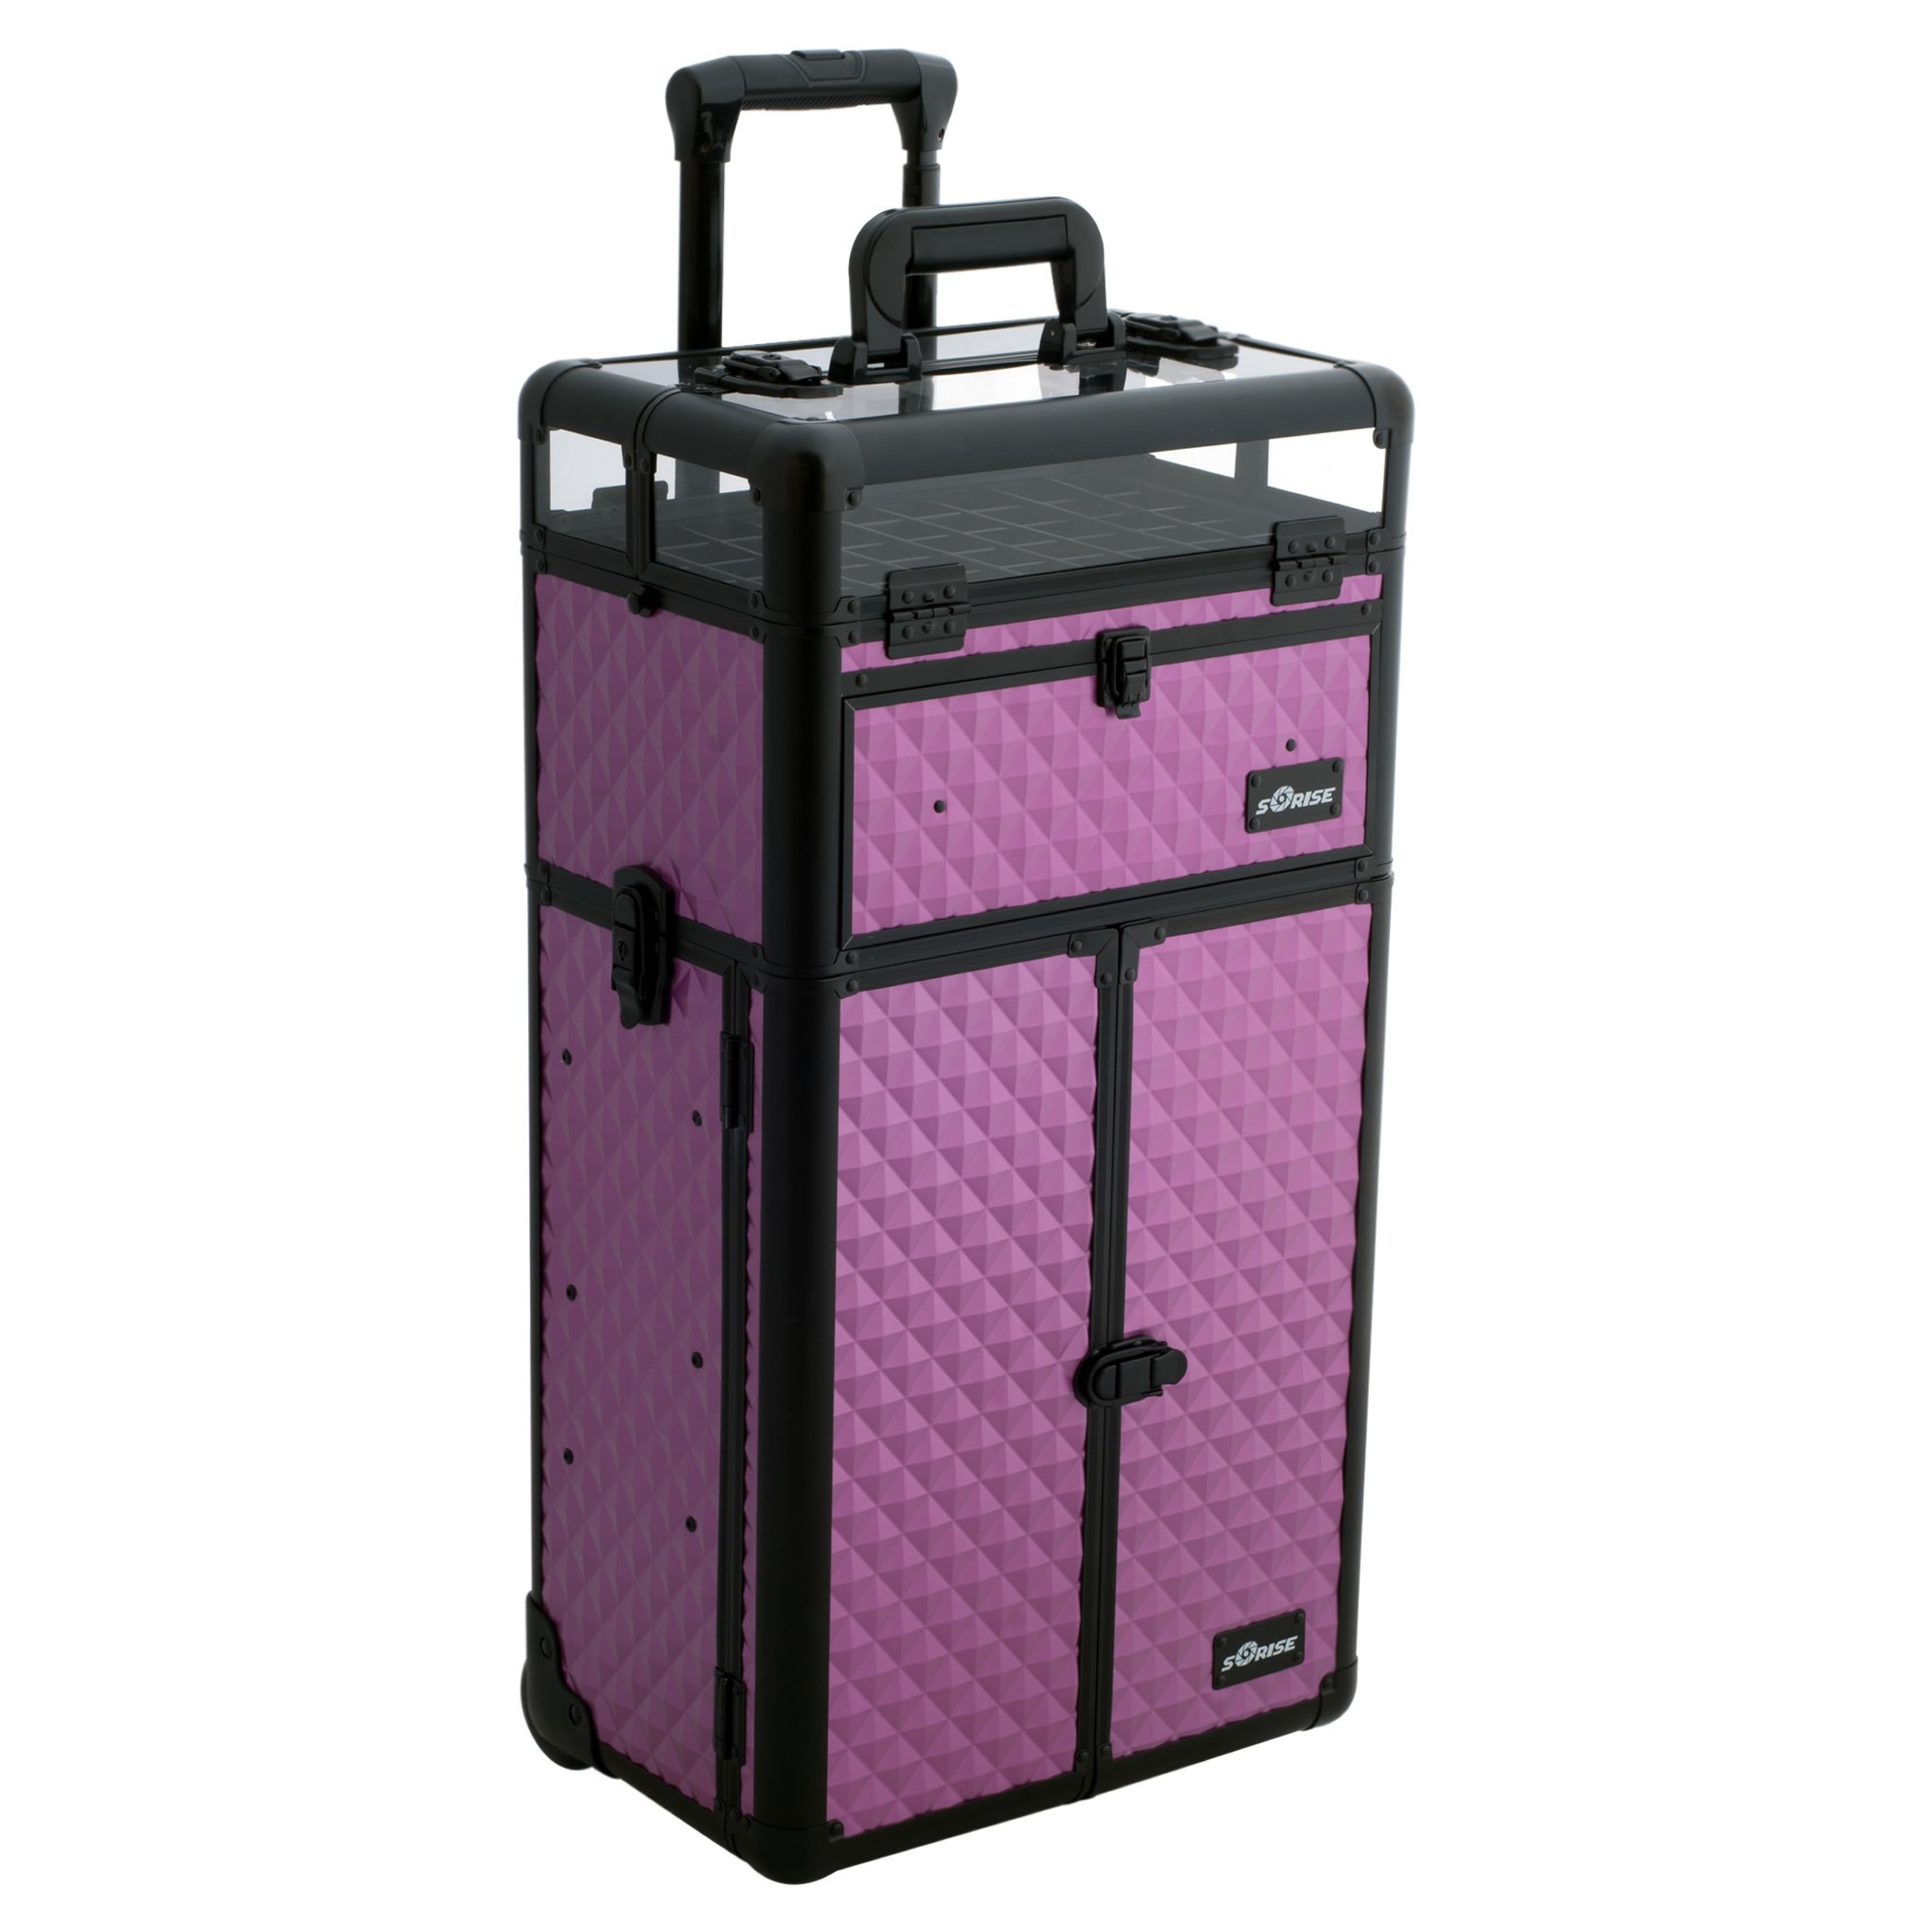 Sunrise Nail Case Polish Organizer on Wheels 2 in 1 I31066, 54 Bottle Capacity, French Doors, 2 Large Drawers, Locking with Mirror, Purple Diamond by SunRise